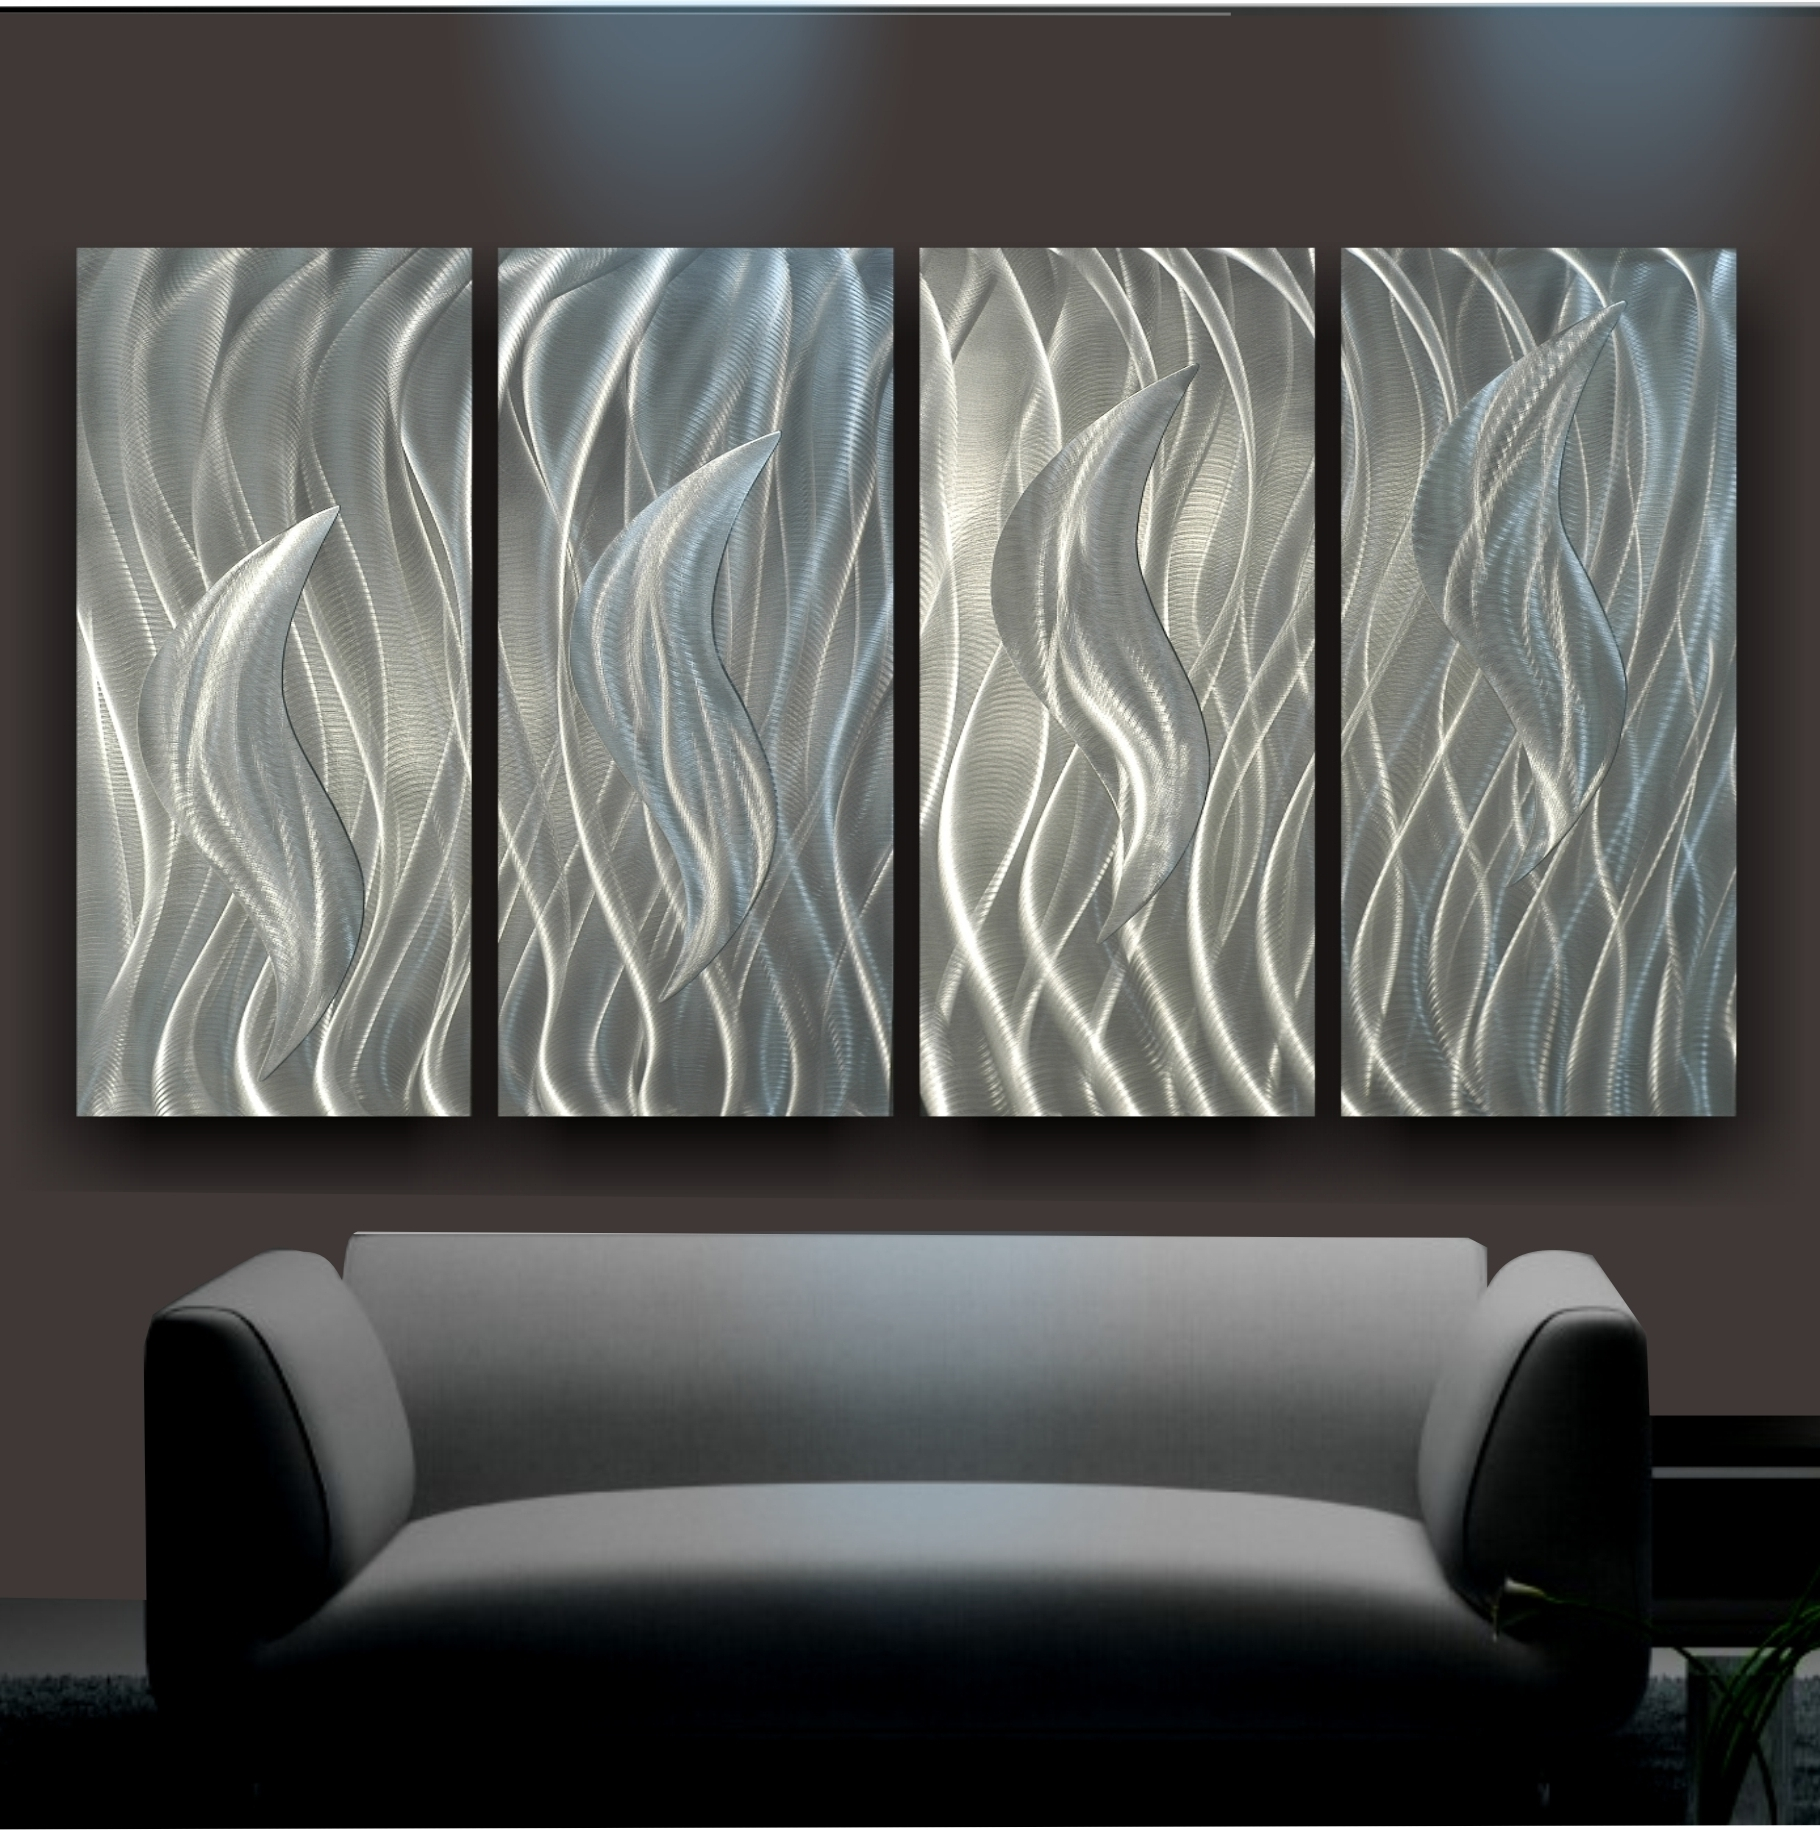 Steel Wall Surface Fine Art Is A Contemporary Sort Of Art Work Intended For Popular Metallic Wall Art (View 13 of 15)